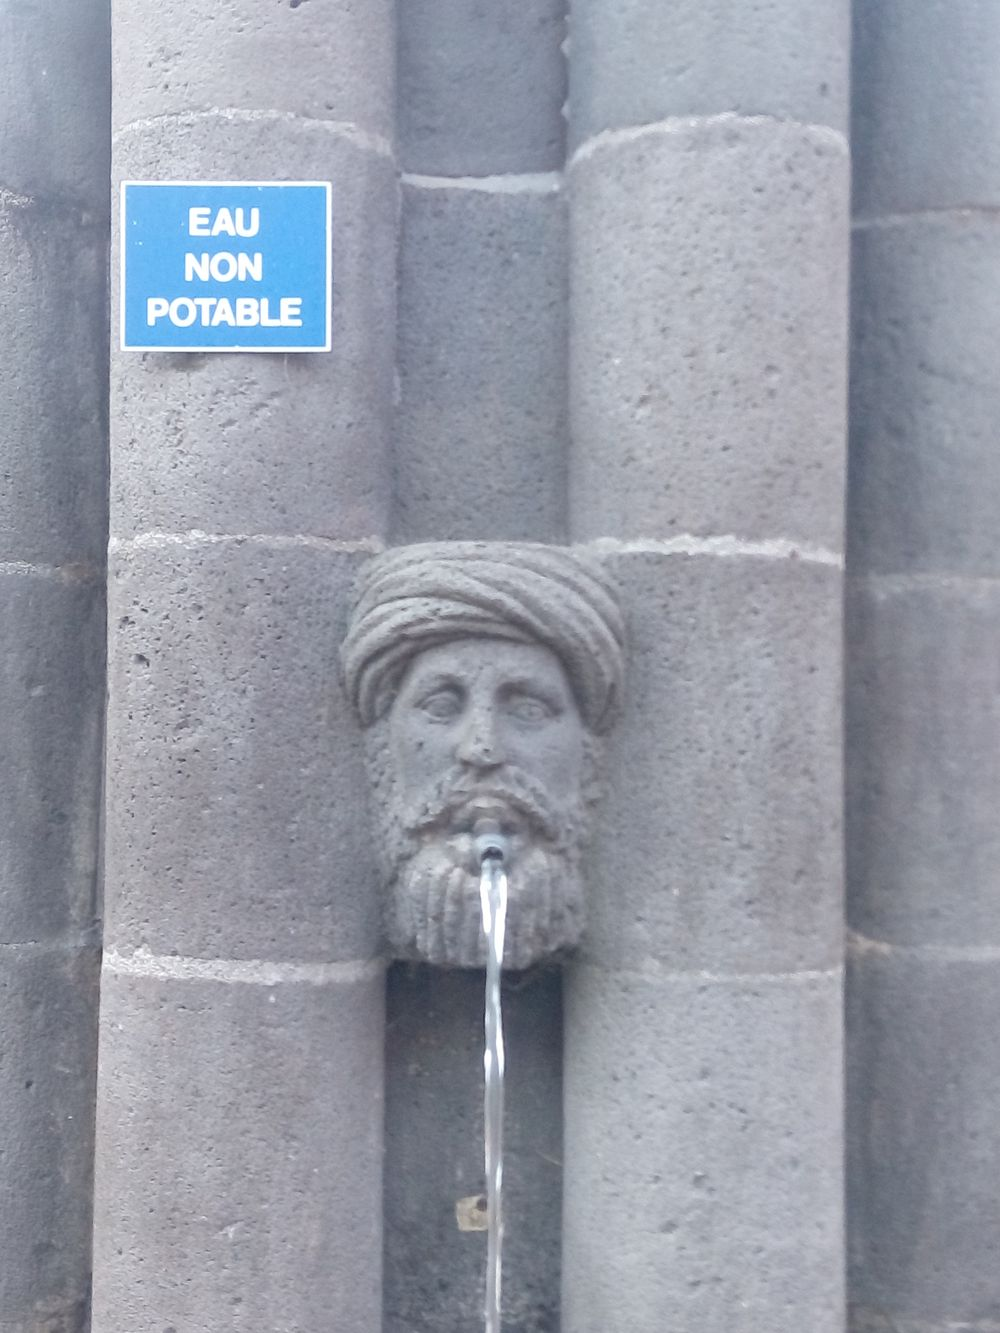 Eau Non Potable